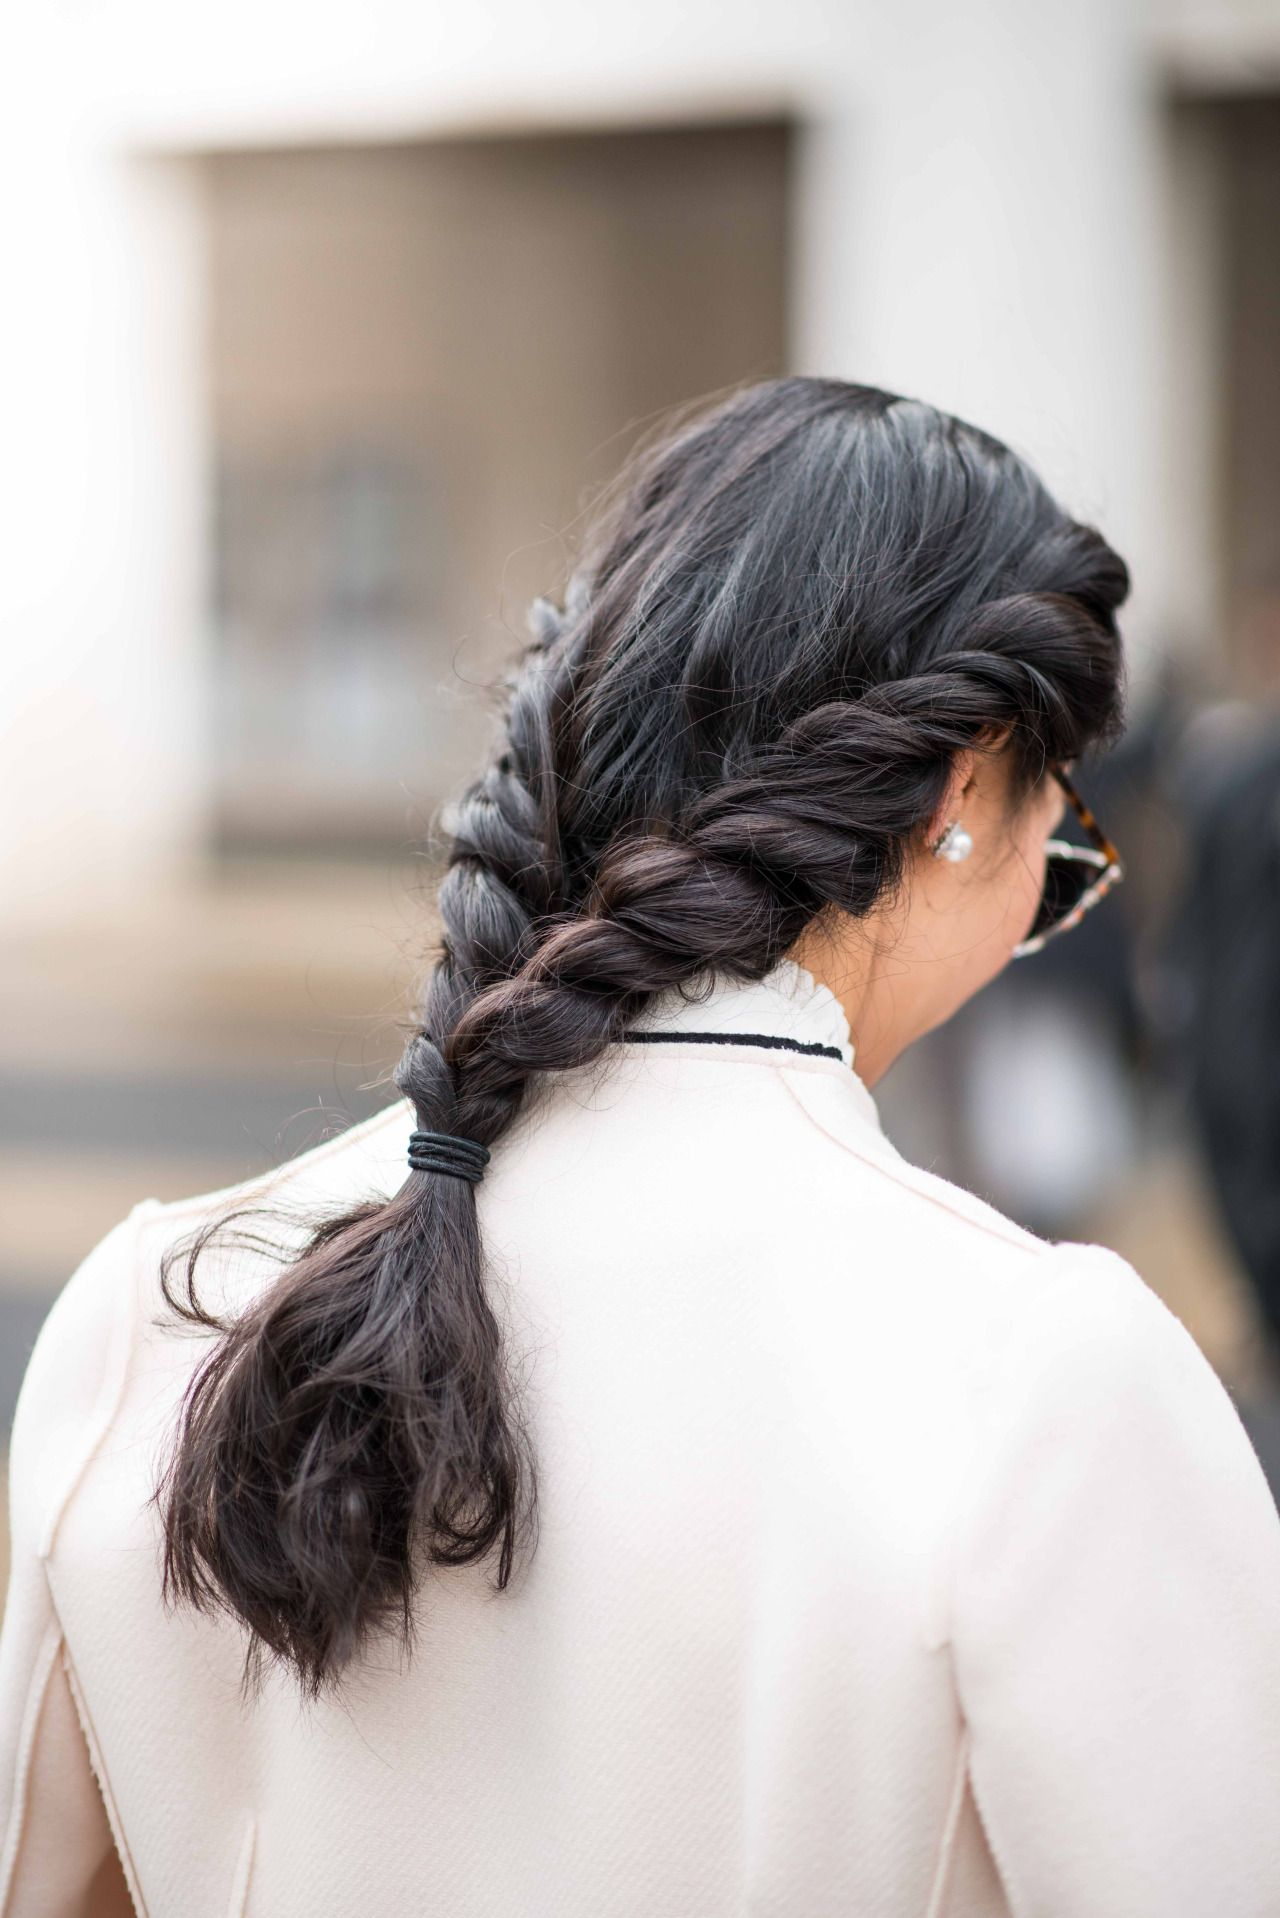 Hair?hot Braided trend this summer pictures video